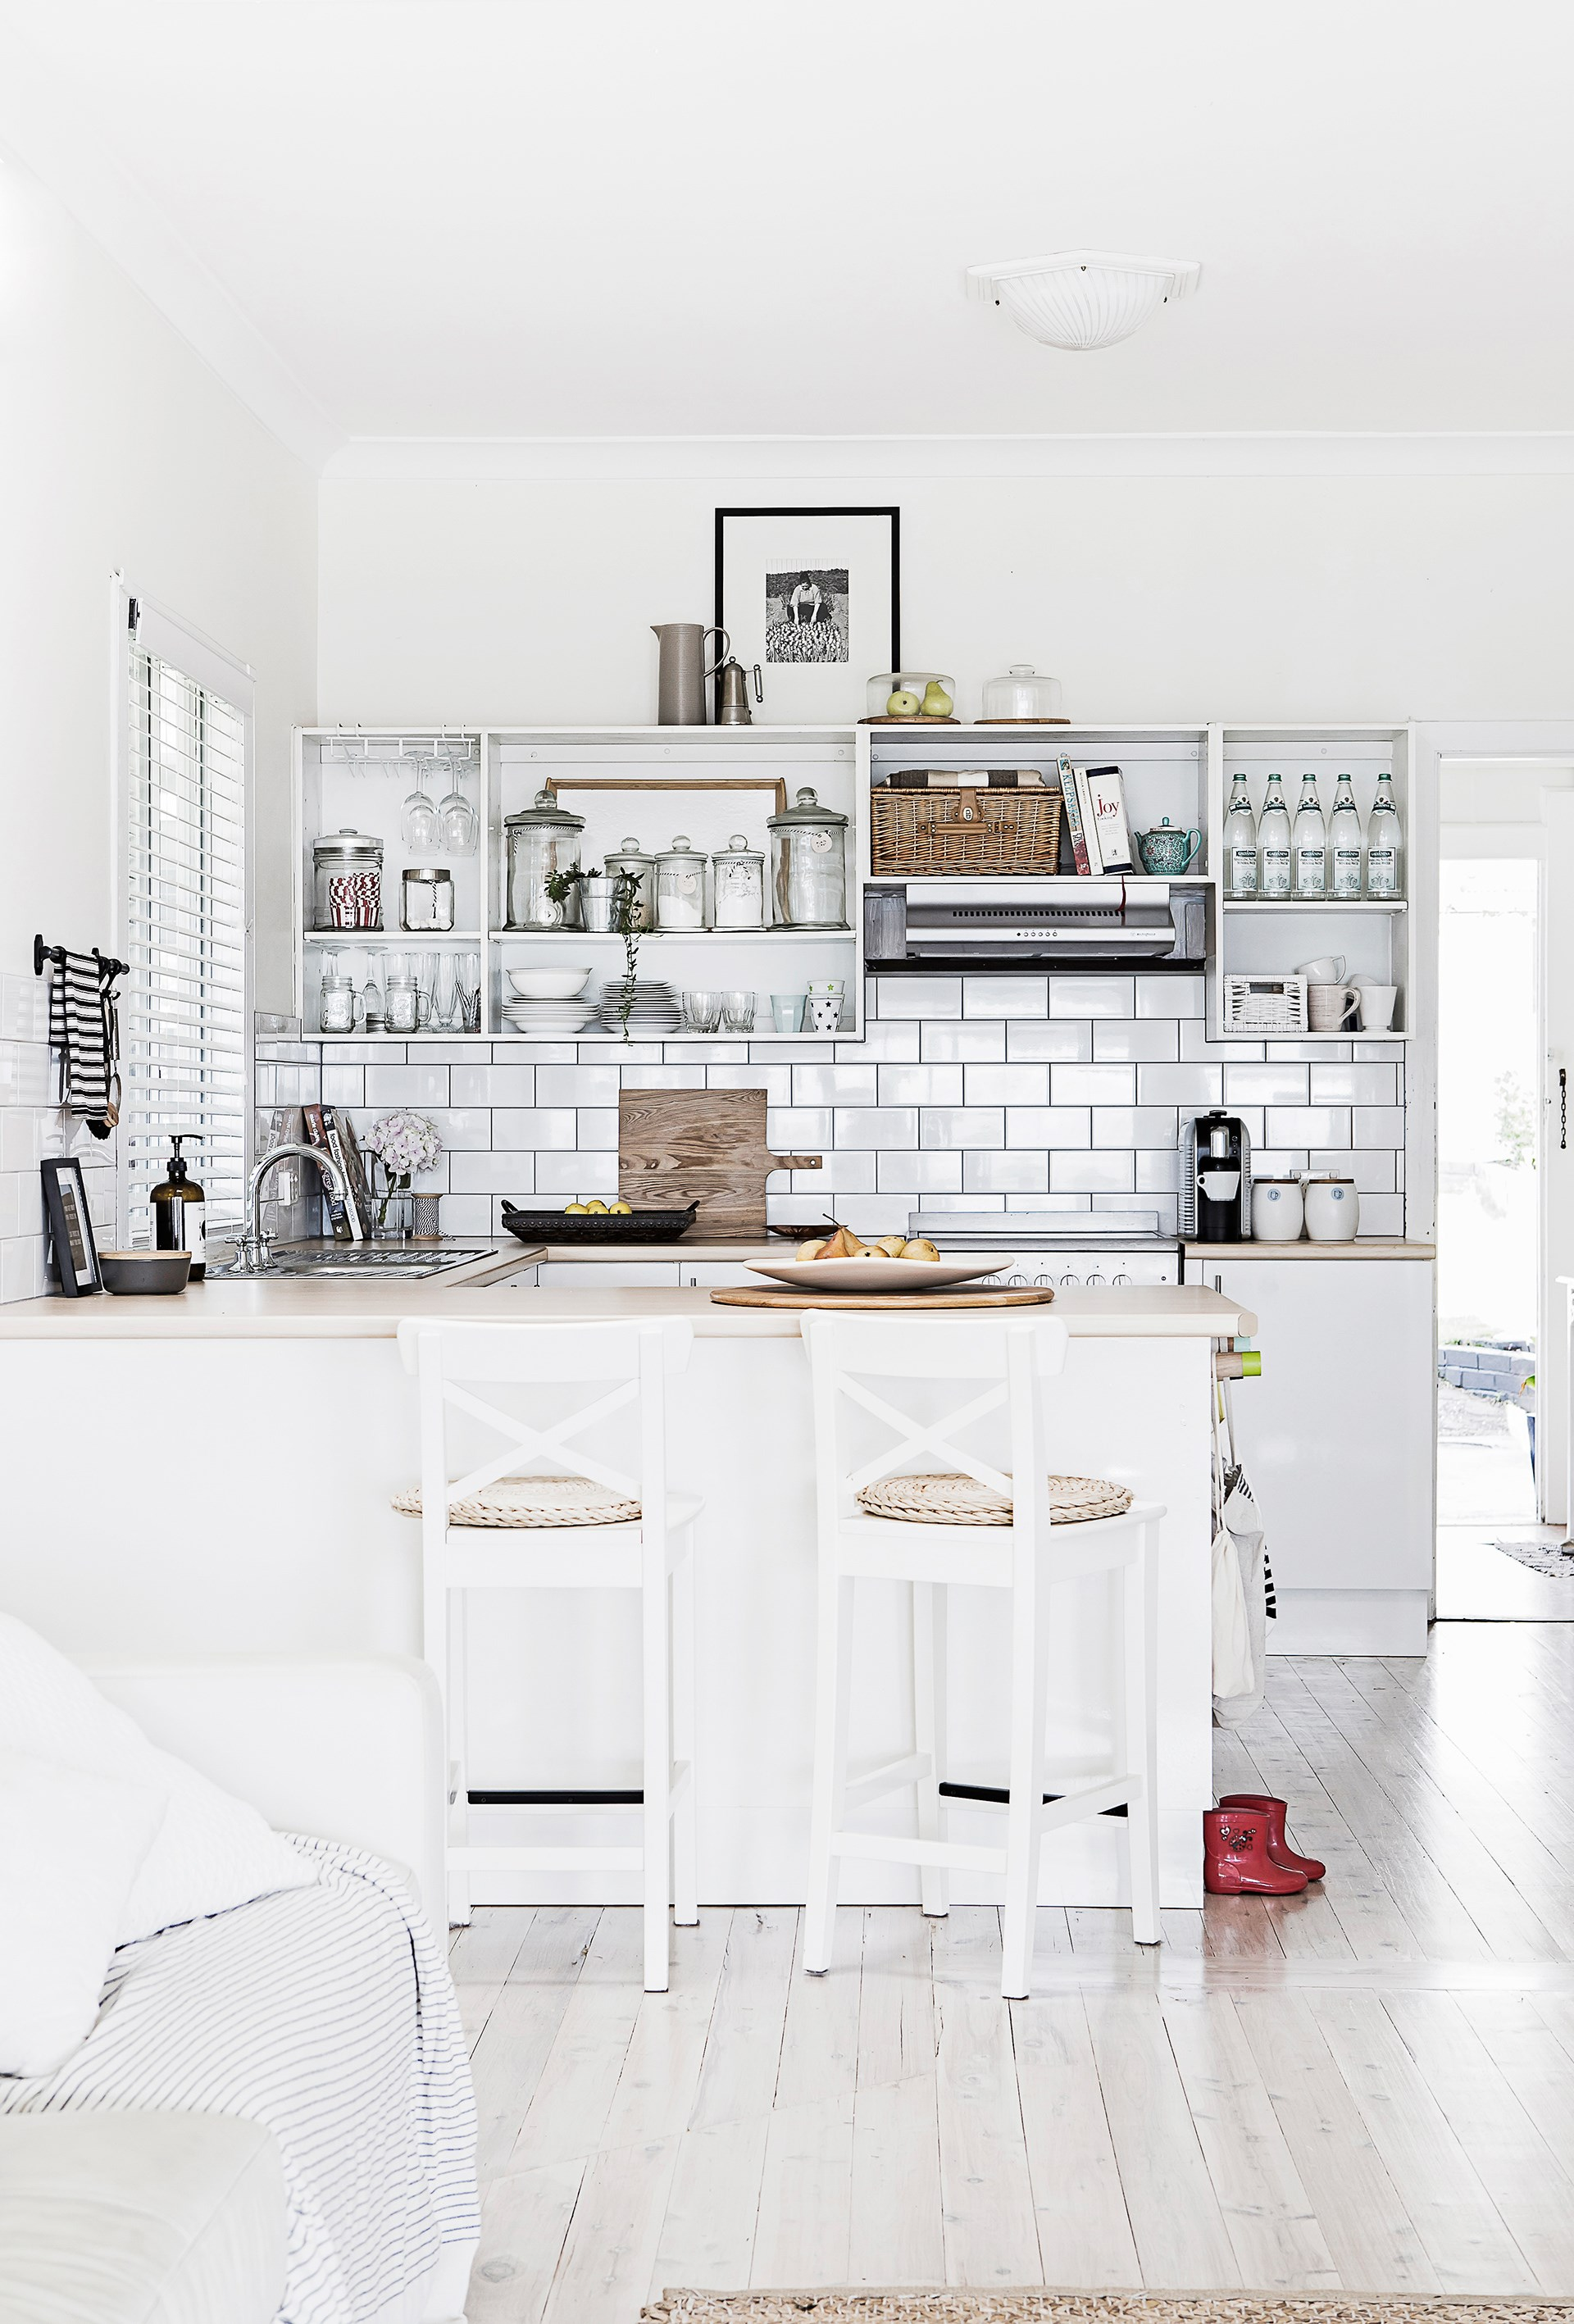 Give your kitchen a fresh new look by creating or adding open-shelving and displaying your favourite ceramics, glassware and cookbooks.